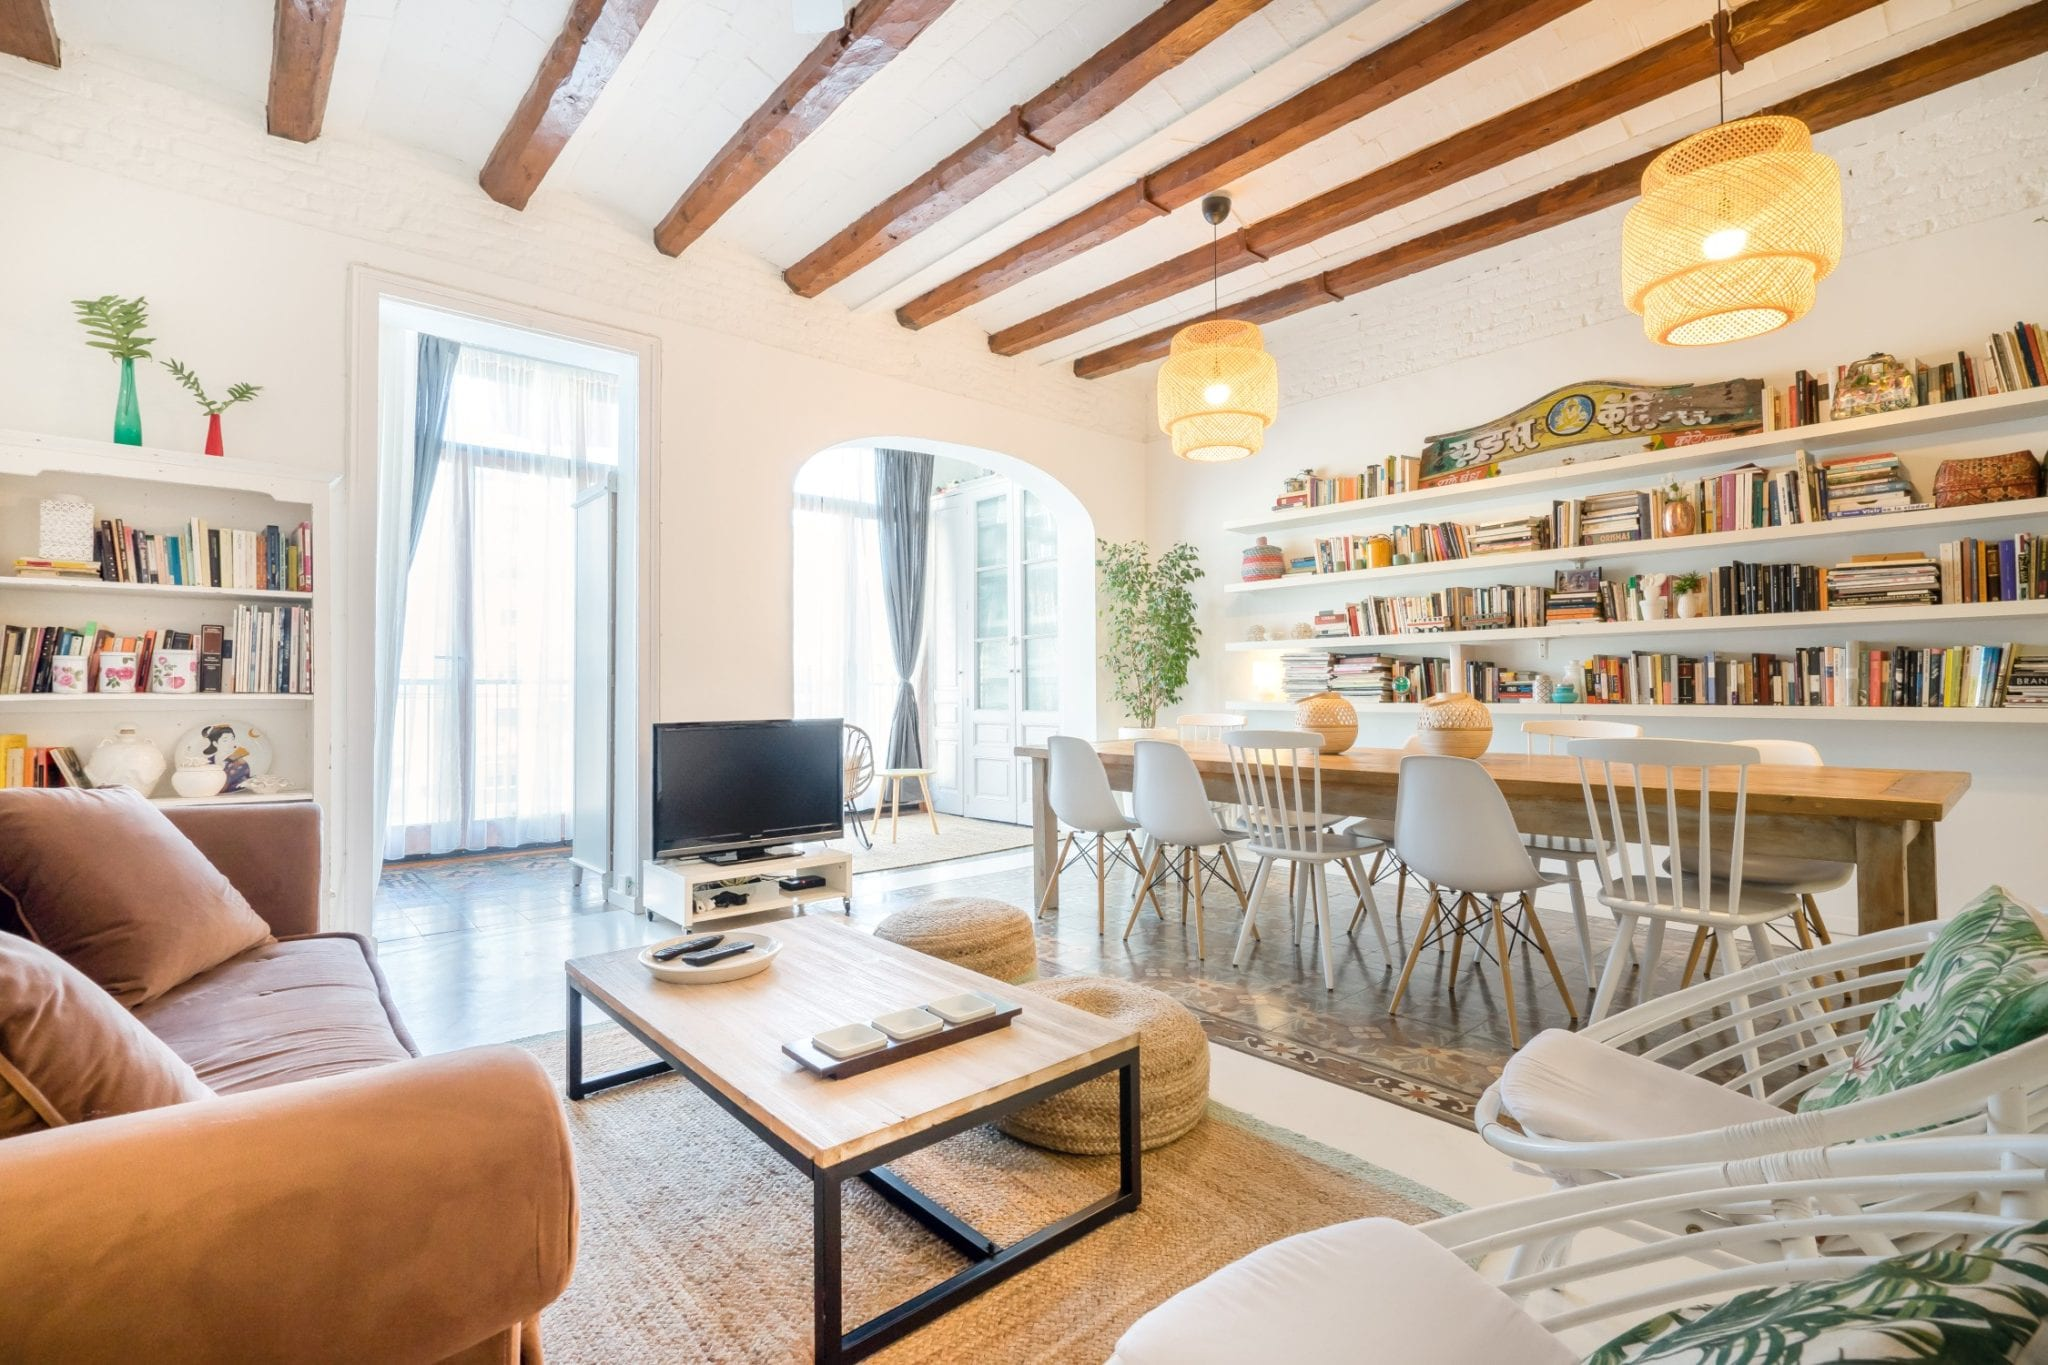 luxury barcelona rental home from airbnb